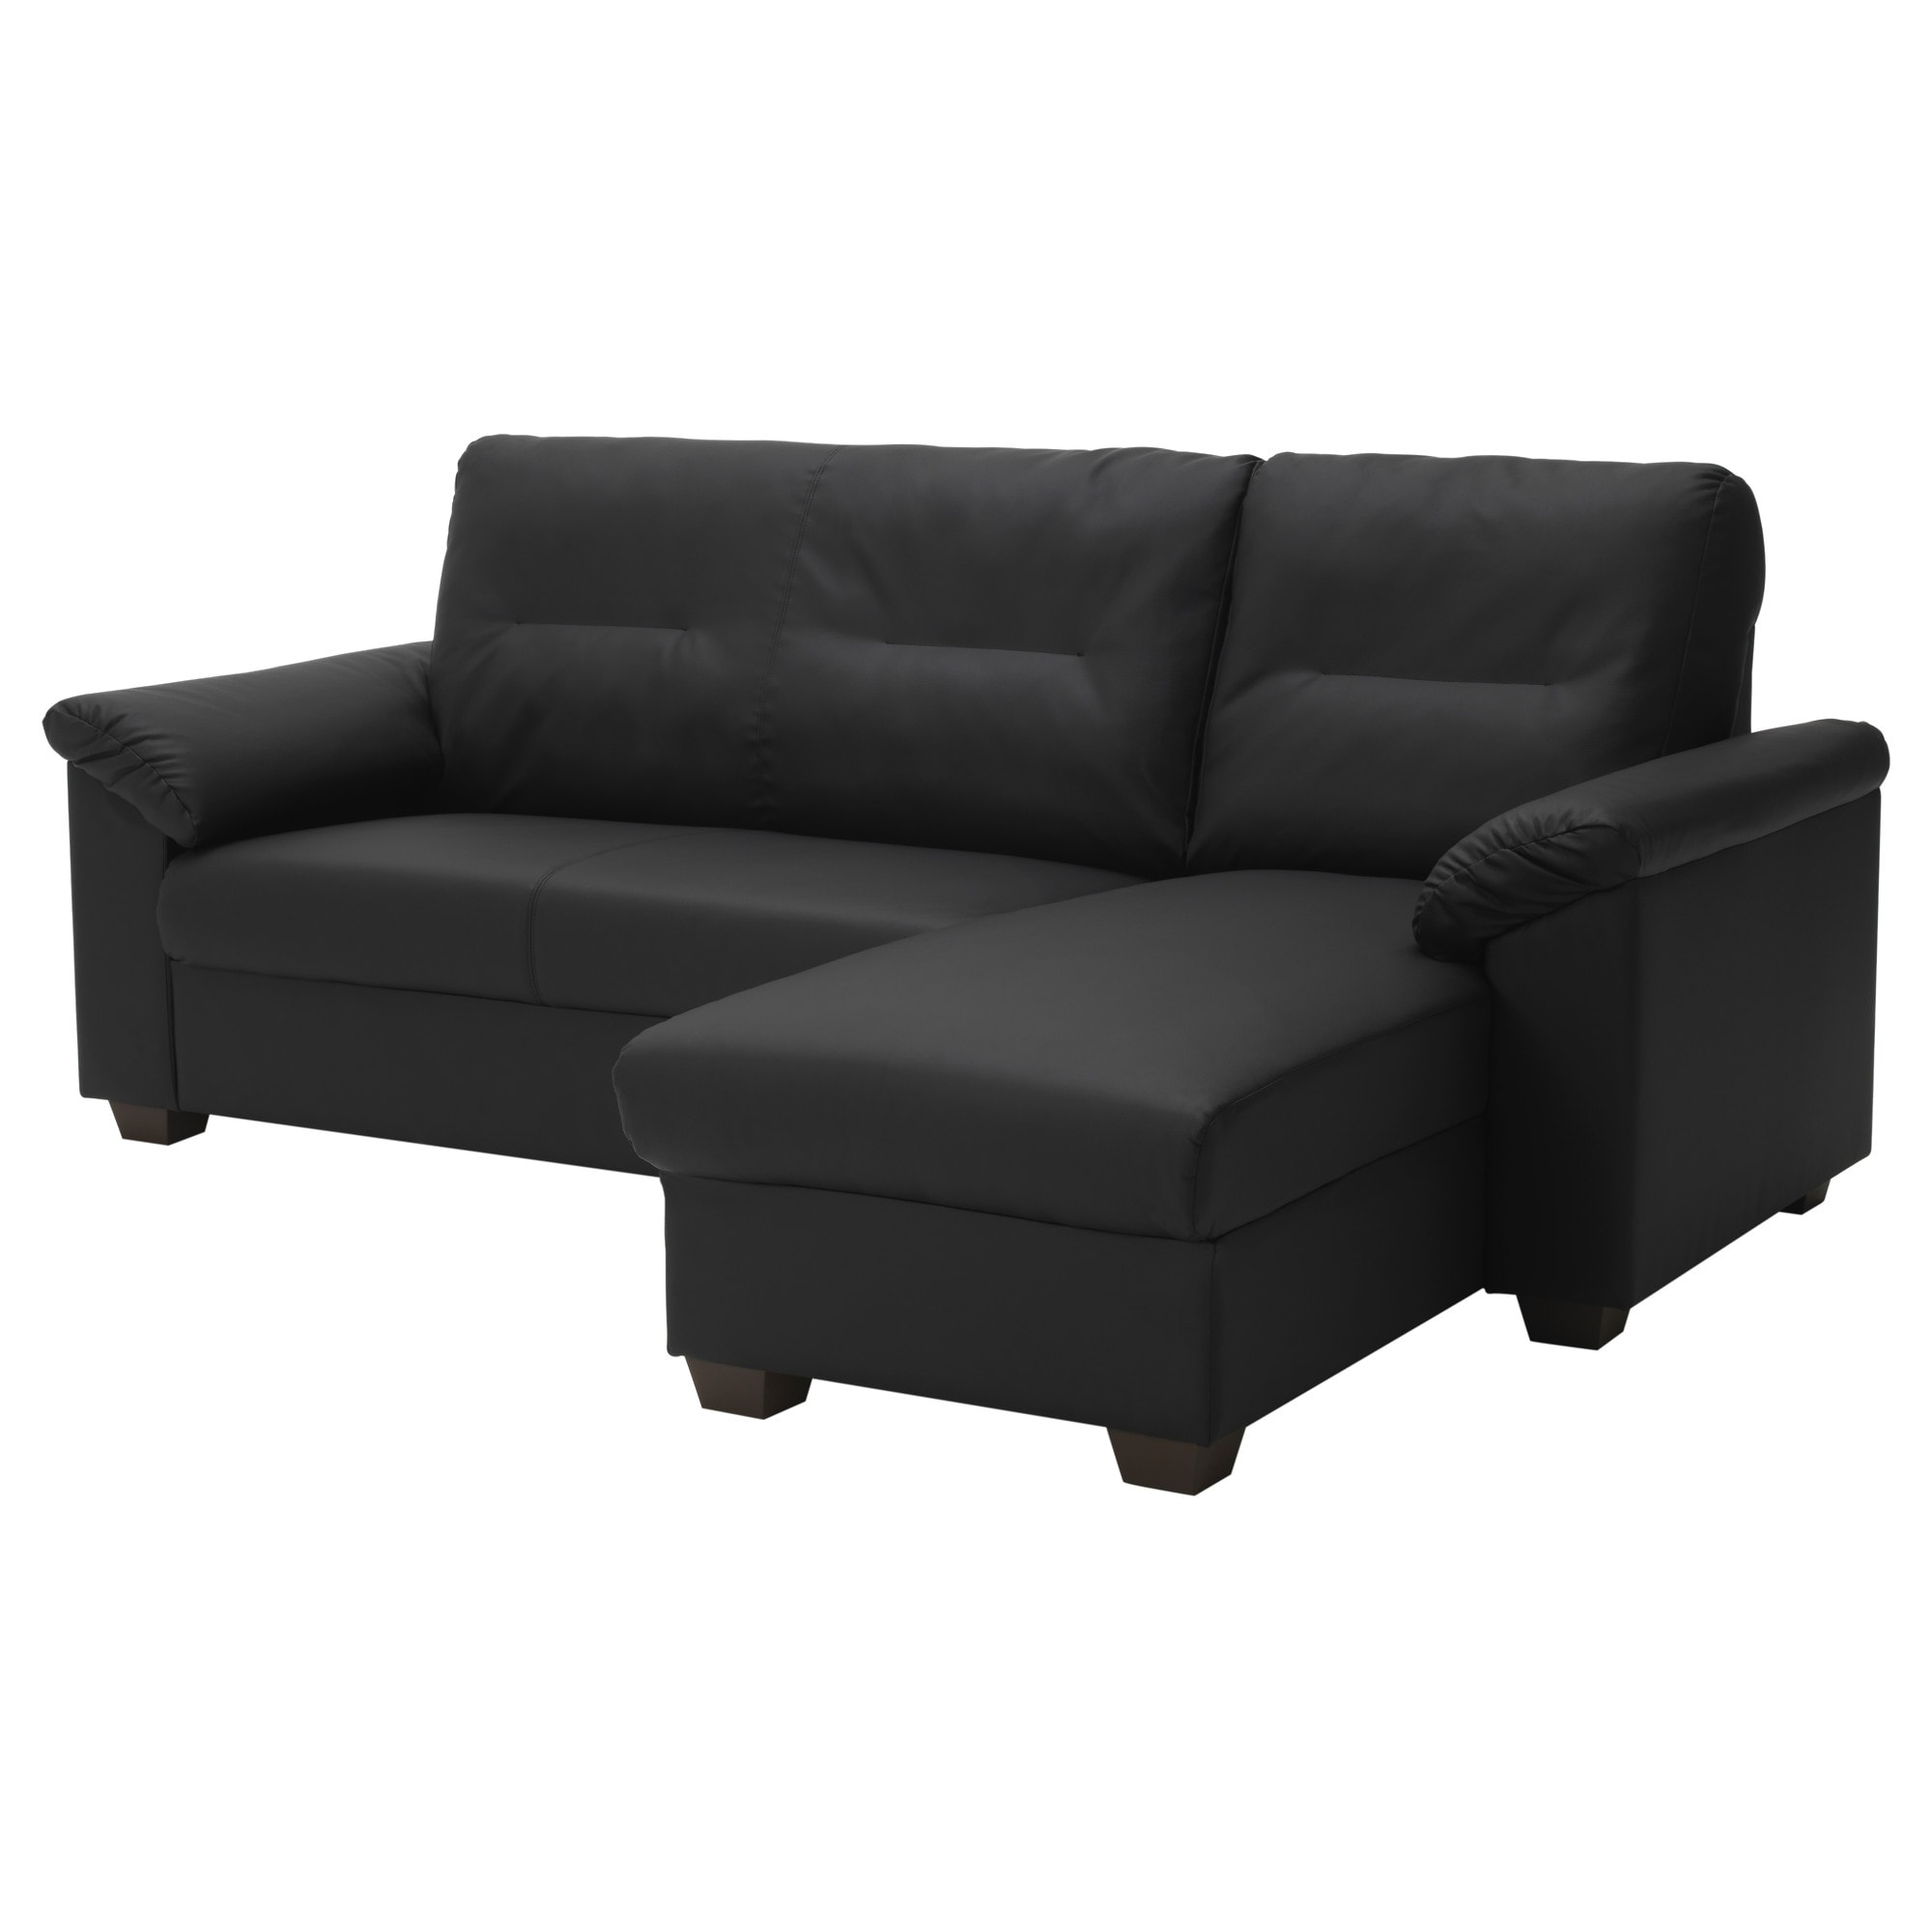 KNISLINGE Sectional 3 seat right IKEA